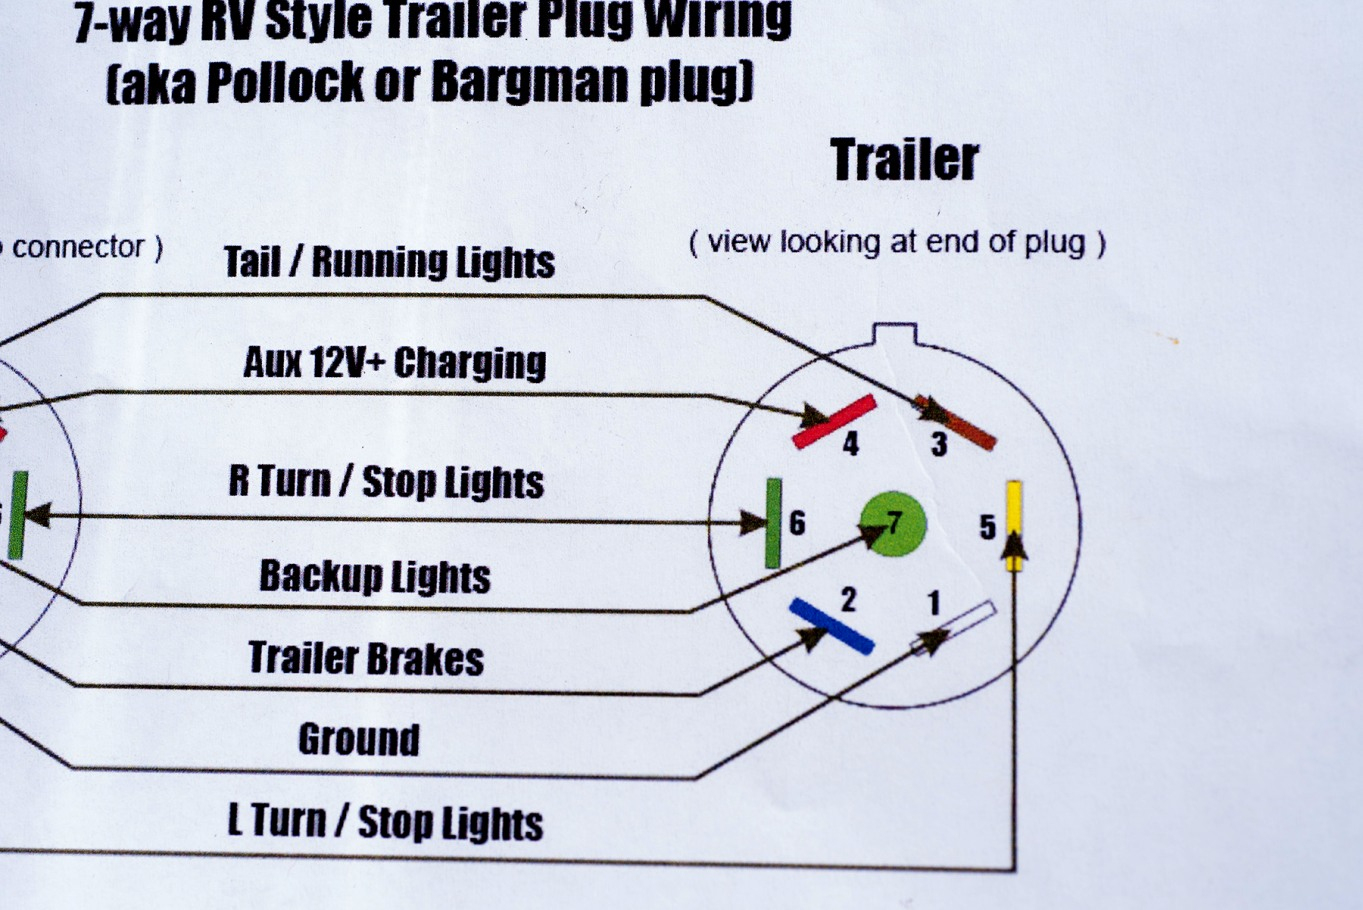 7 Round Trailer Wiring - Data Wiring Diagram Schematic - 6 Way To 7 Way Trailer Wiring Diagram